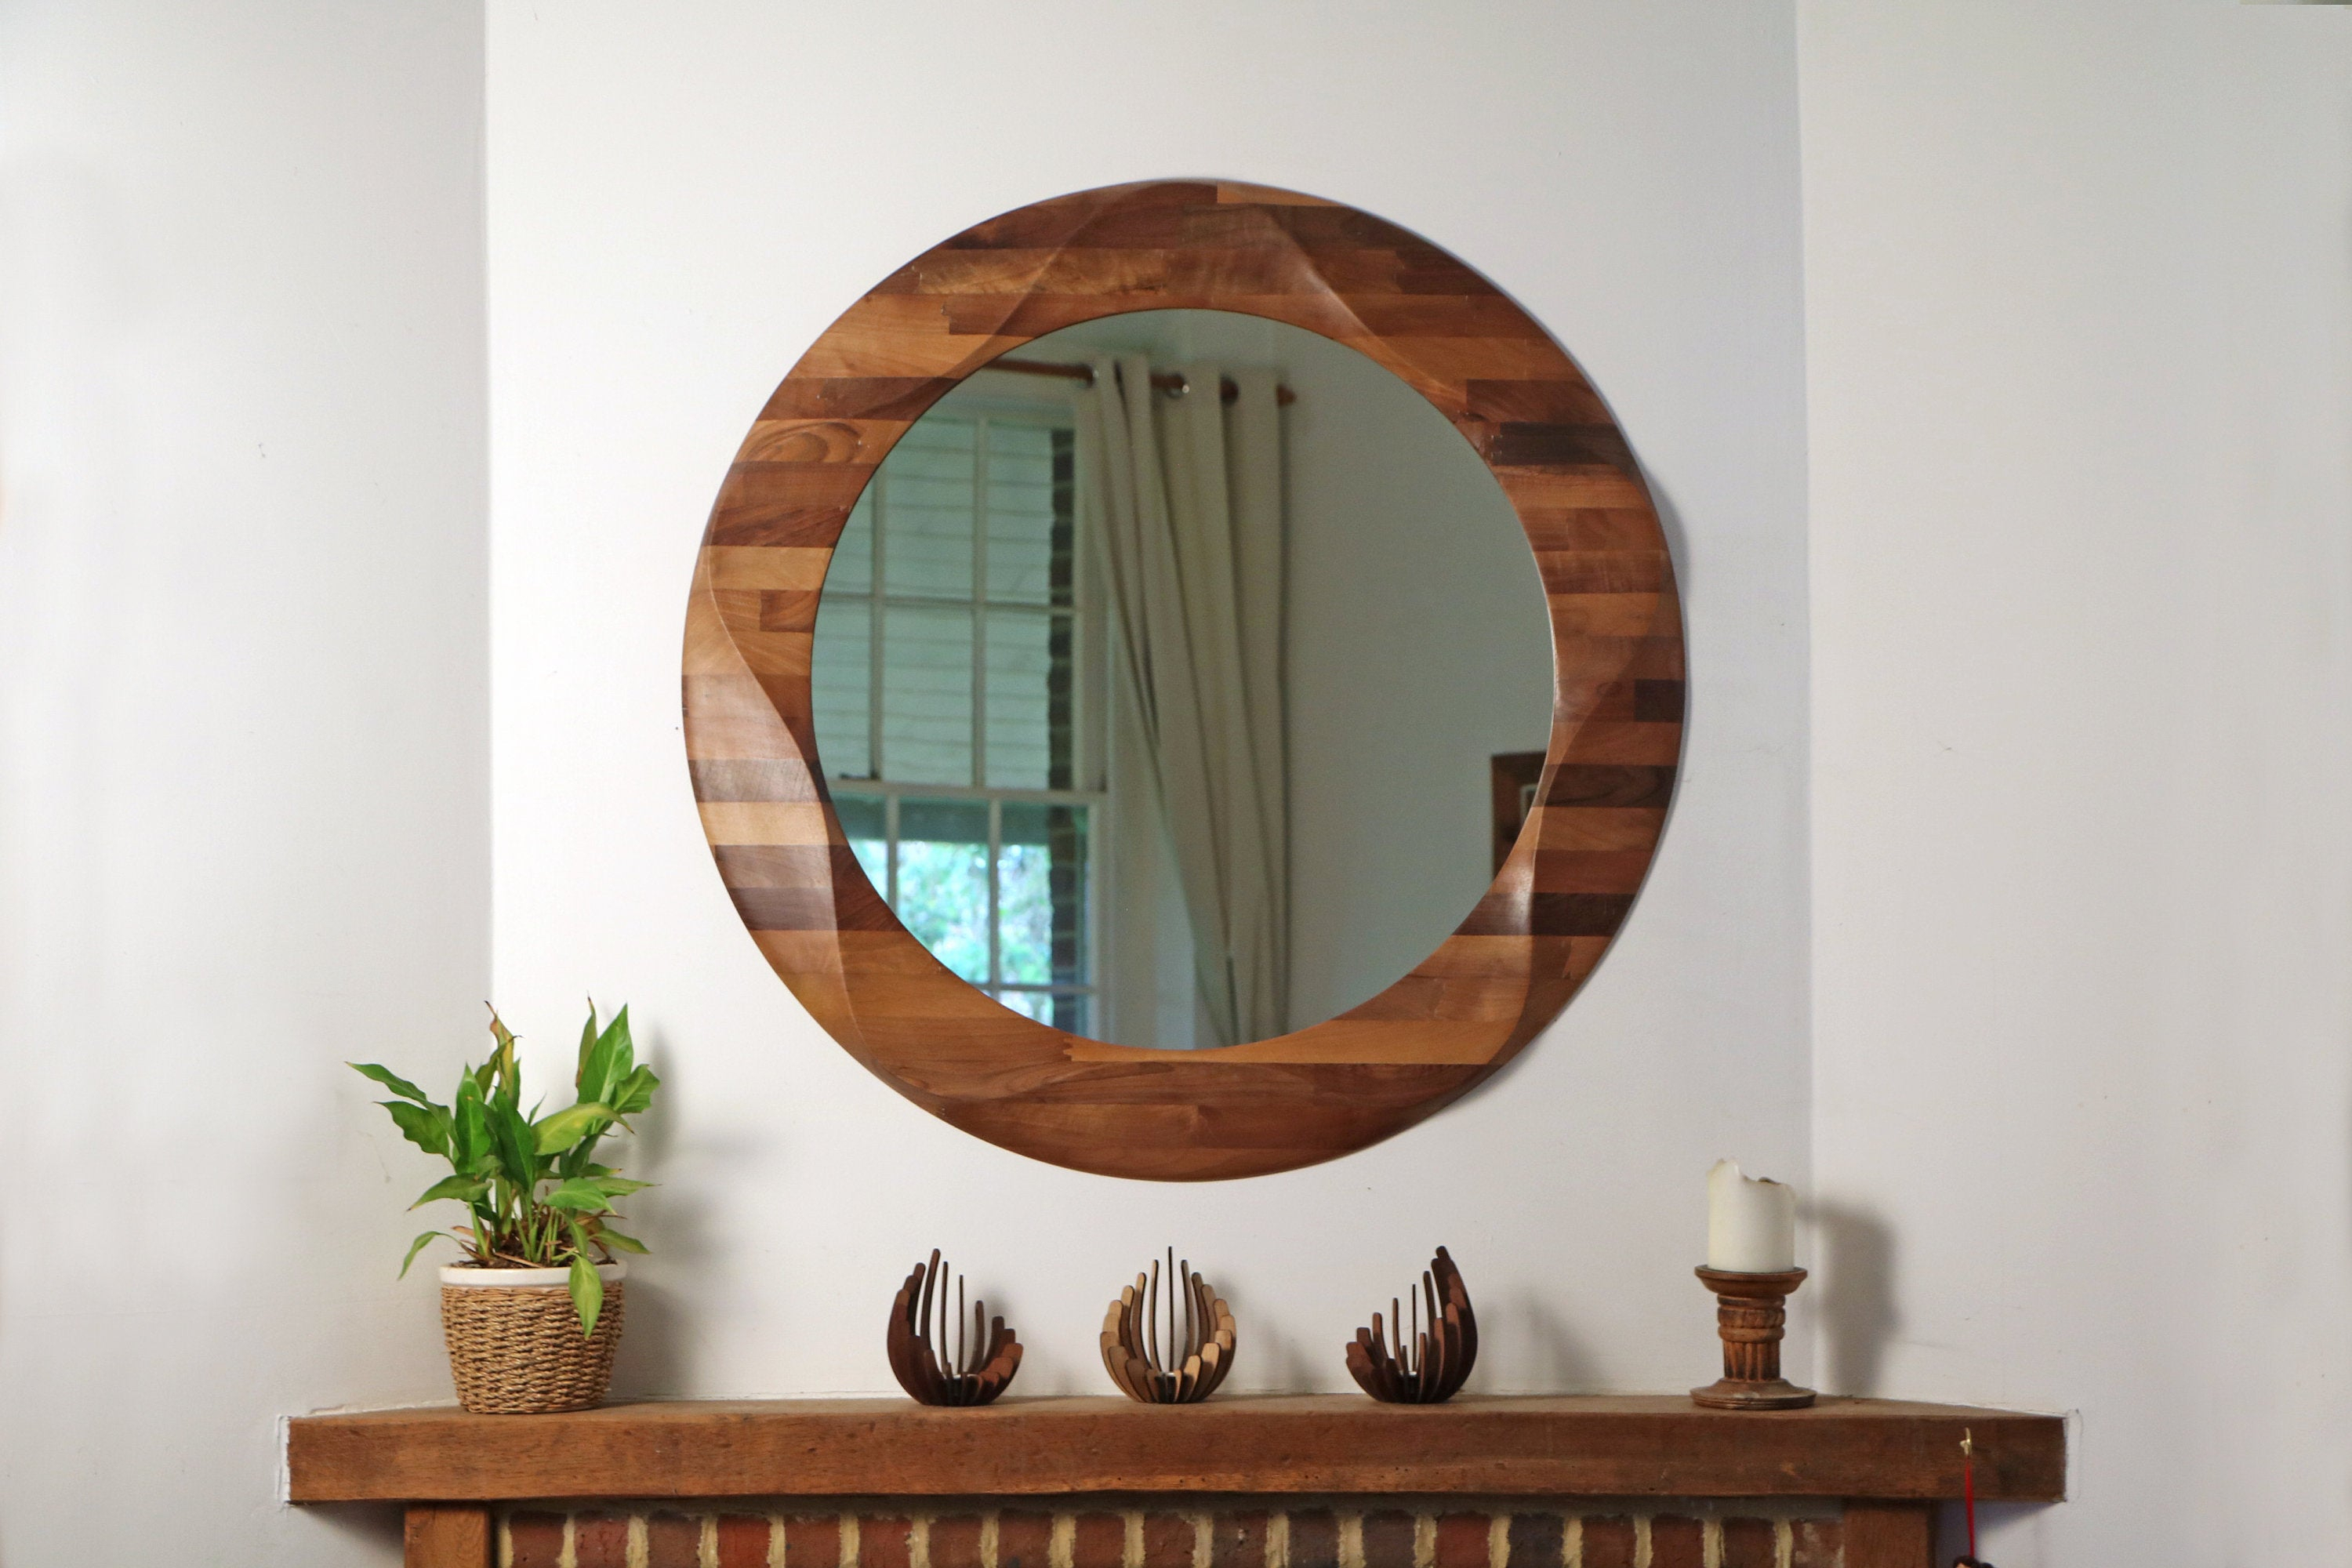 Round Mirror, Large Decorative Round Wooden Wall Mirror, Wooden Mirror  Wall, Circular Wall Hanging Mirror Made From Solid Walnut Wood (View 8 of 20)